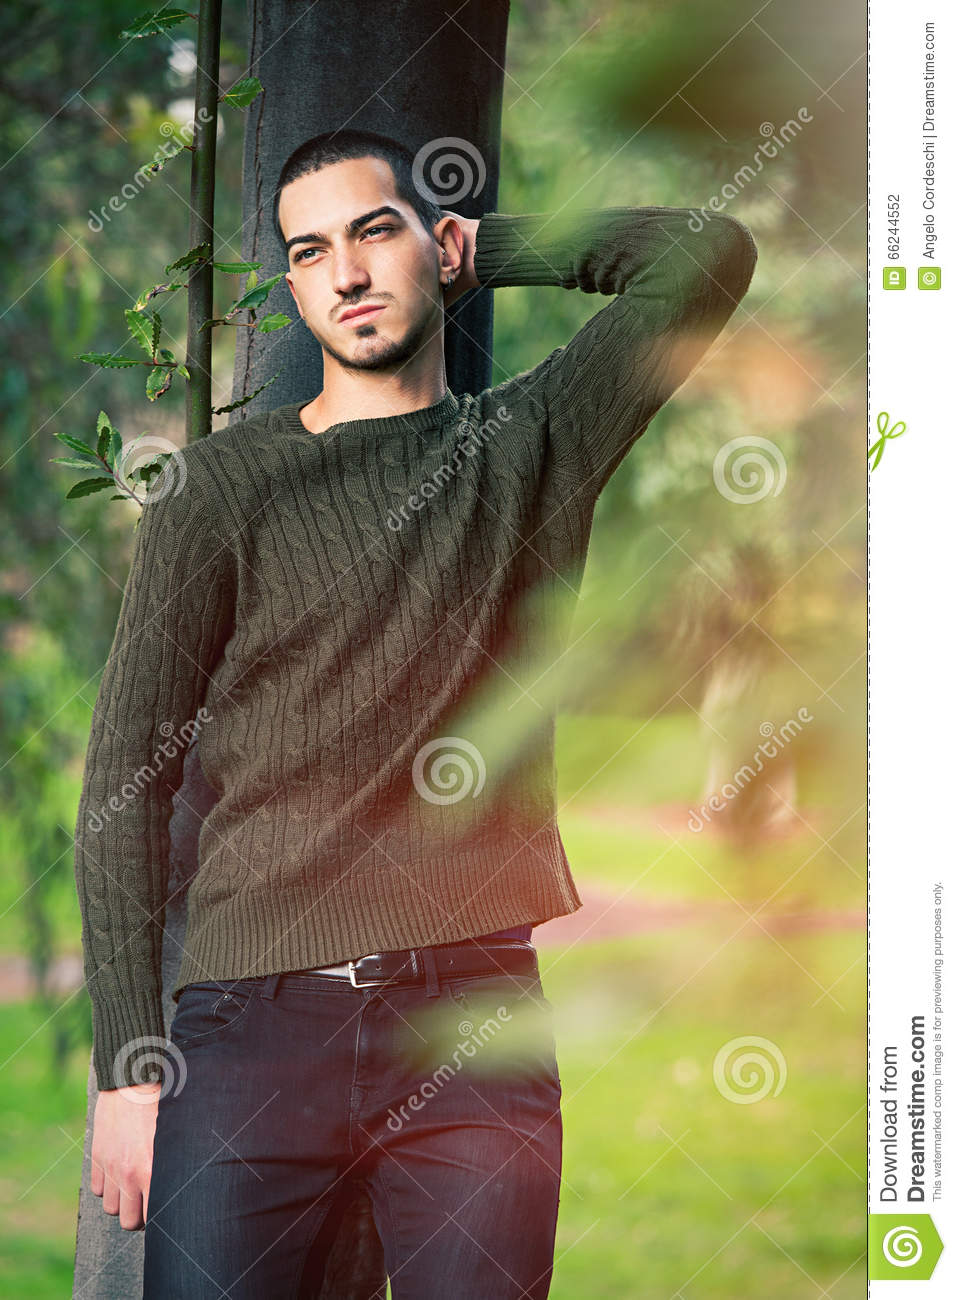 Model Man Short Hair Leaning Against A Tree In A Nature